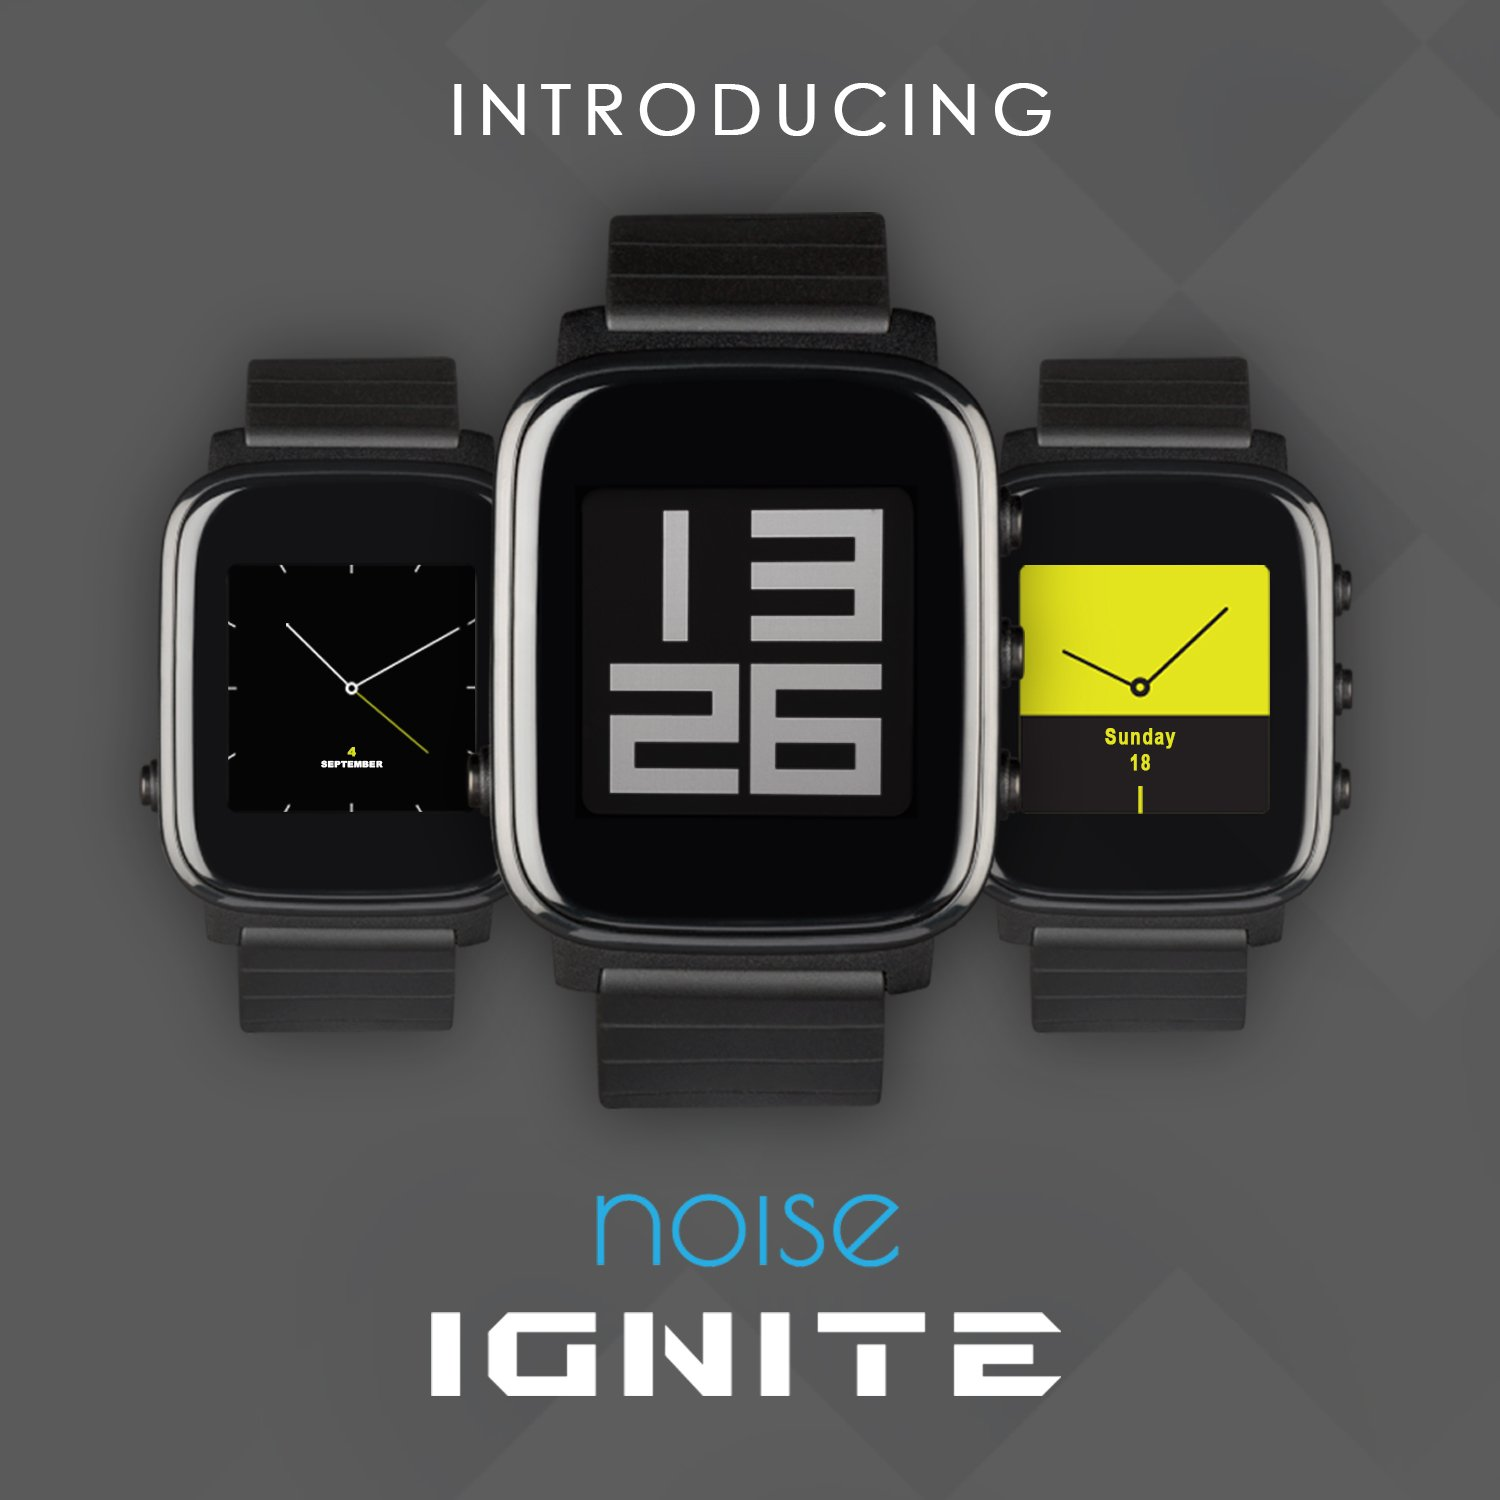 Noise Ignite Smart Watch